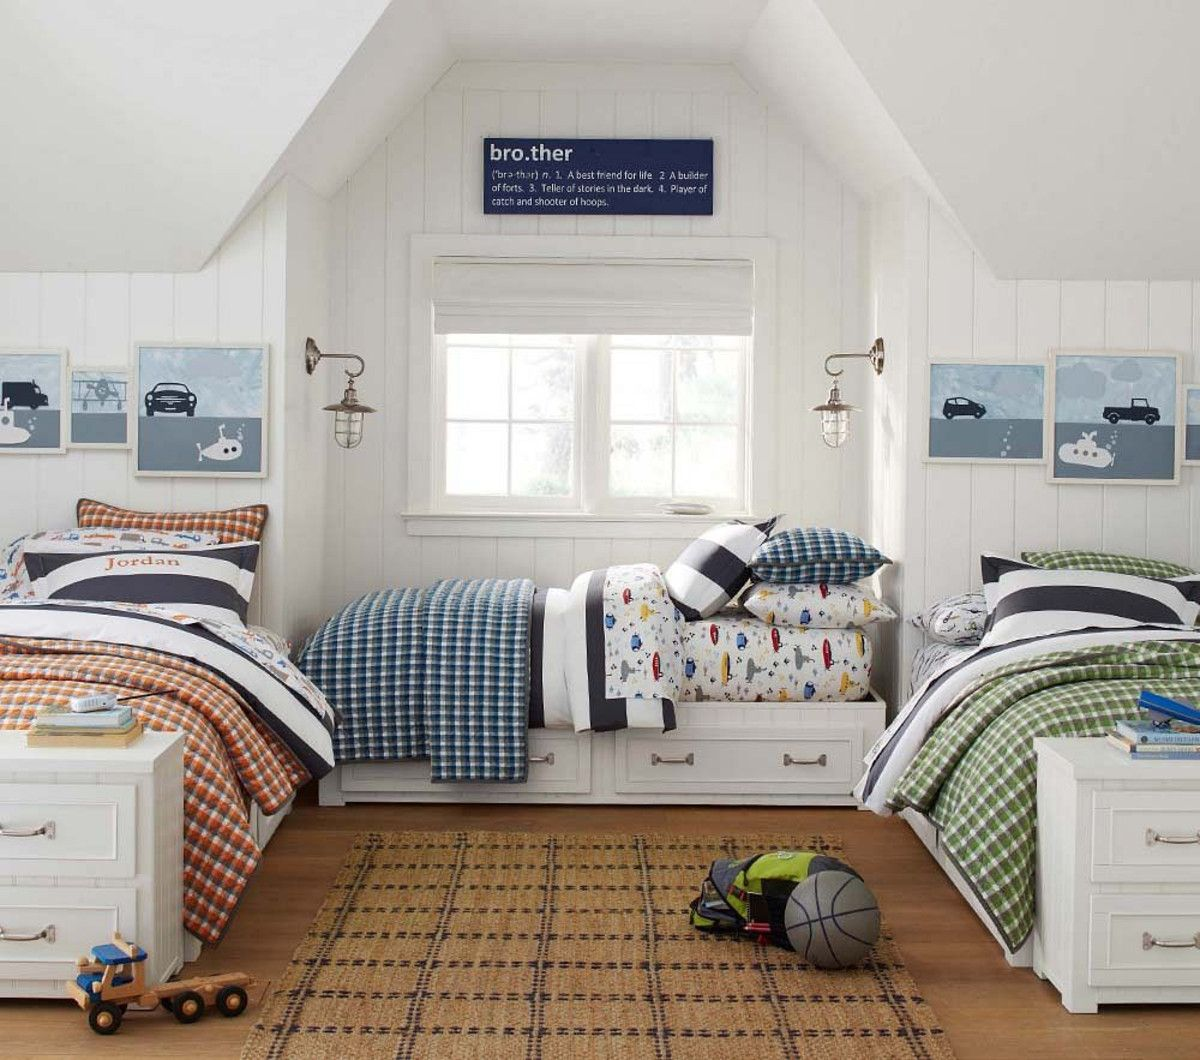 3 Twin Beds In The Space Of 1 Belden Beds Pottery Barn Kids Australia Boys Bedrooms